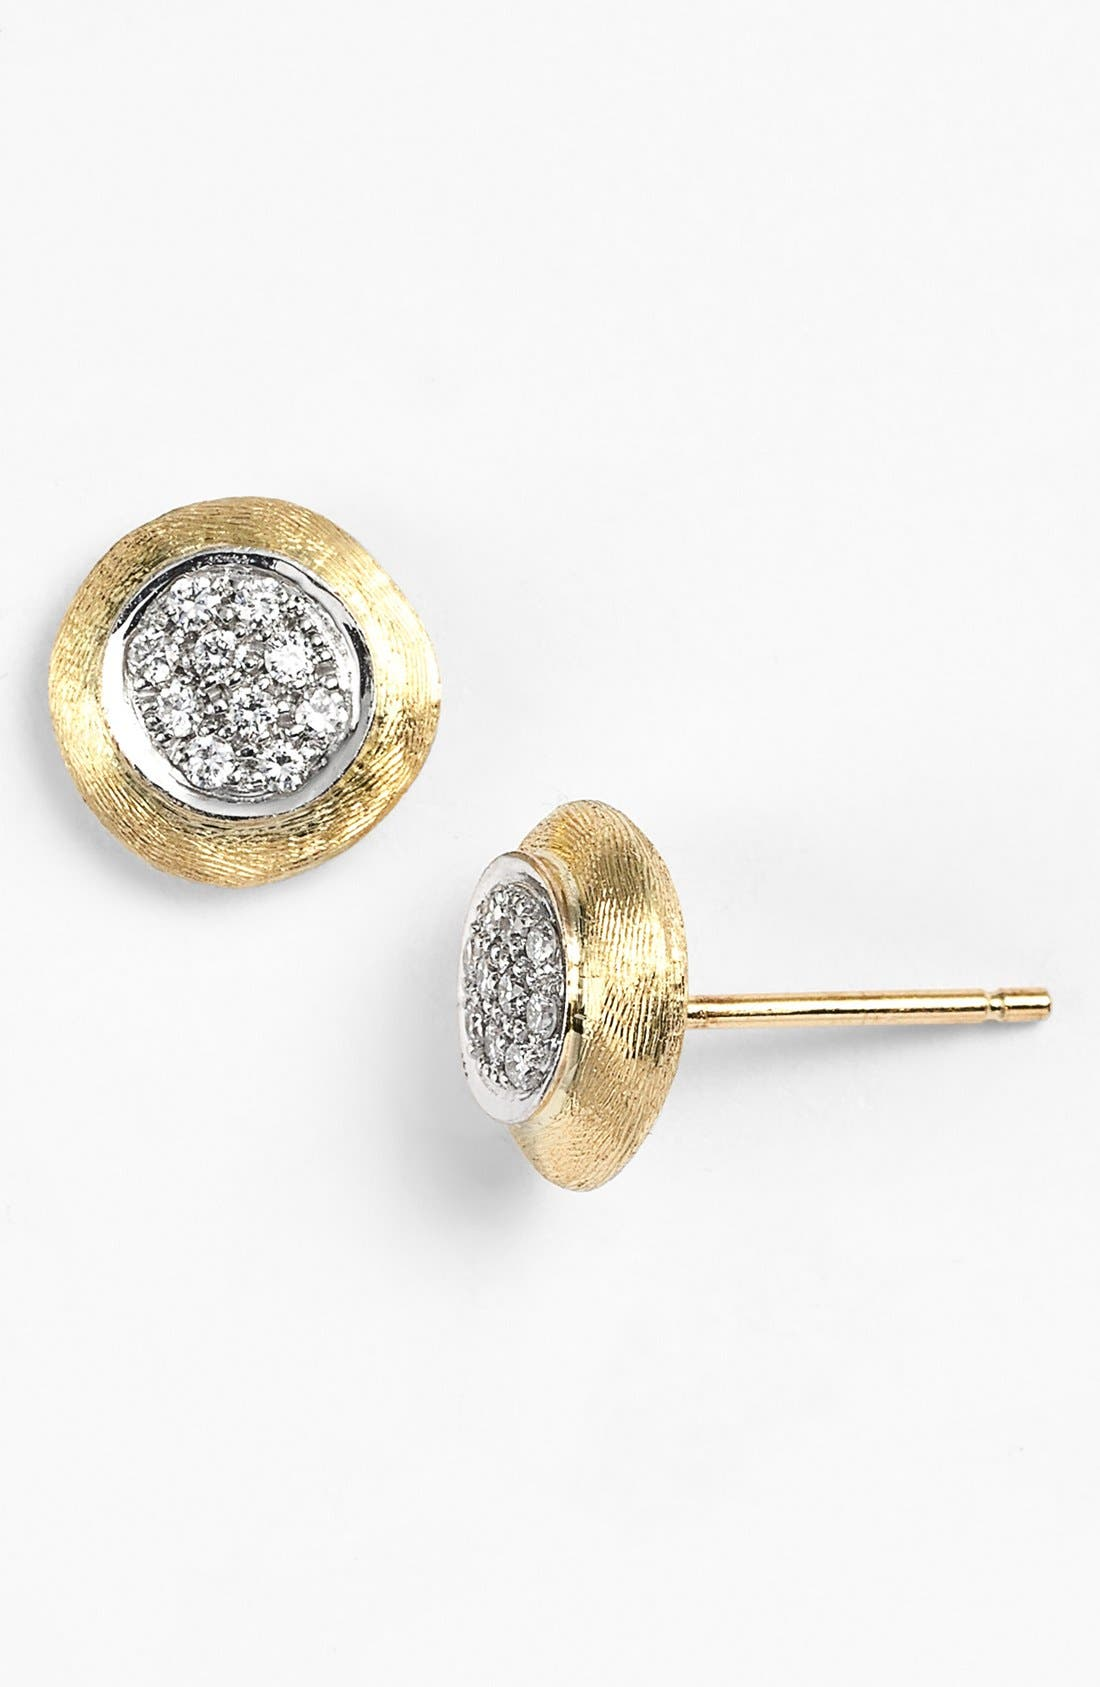 'Delicate' Diamond Stud Earrings,                         Main,                         color, YELLOW GOLD